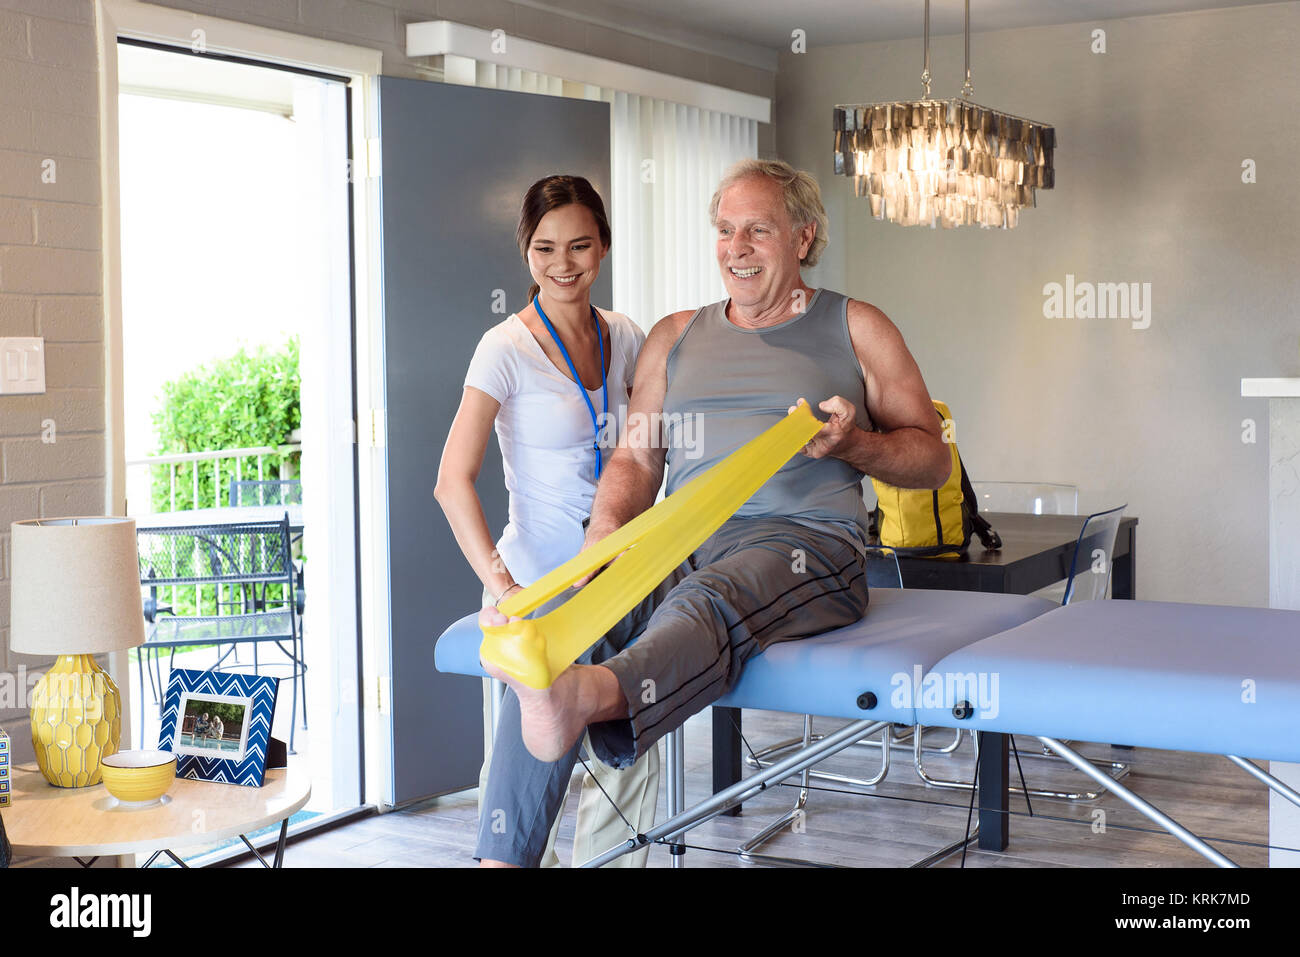 Physical therapist watching man stretch leg with resistance band - Stock Image